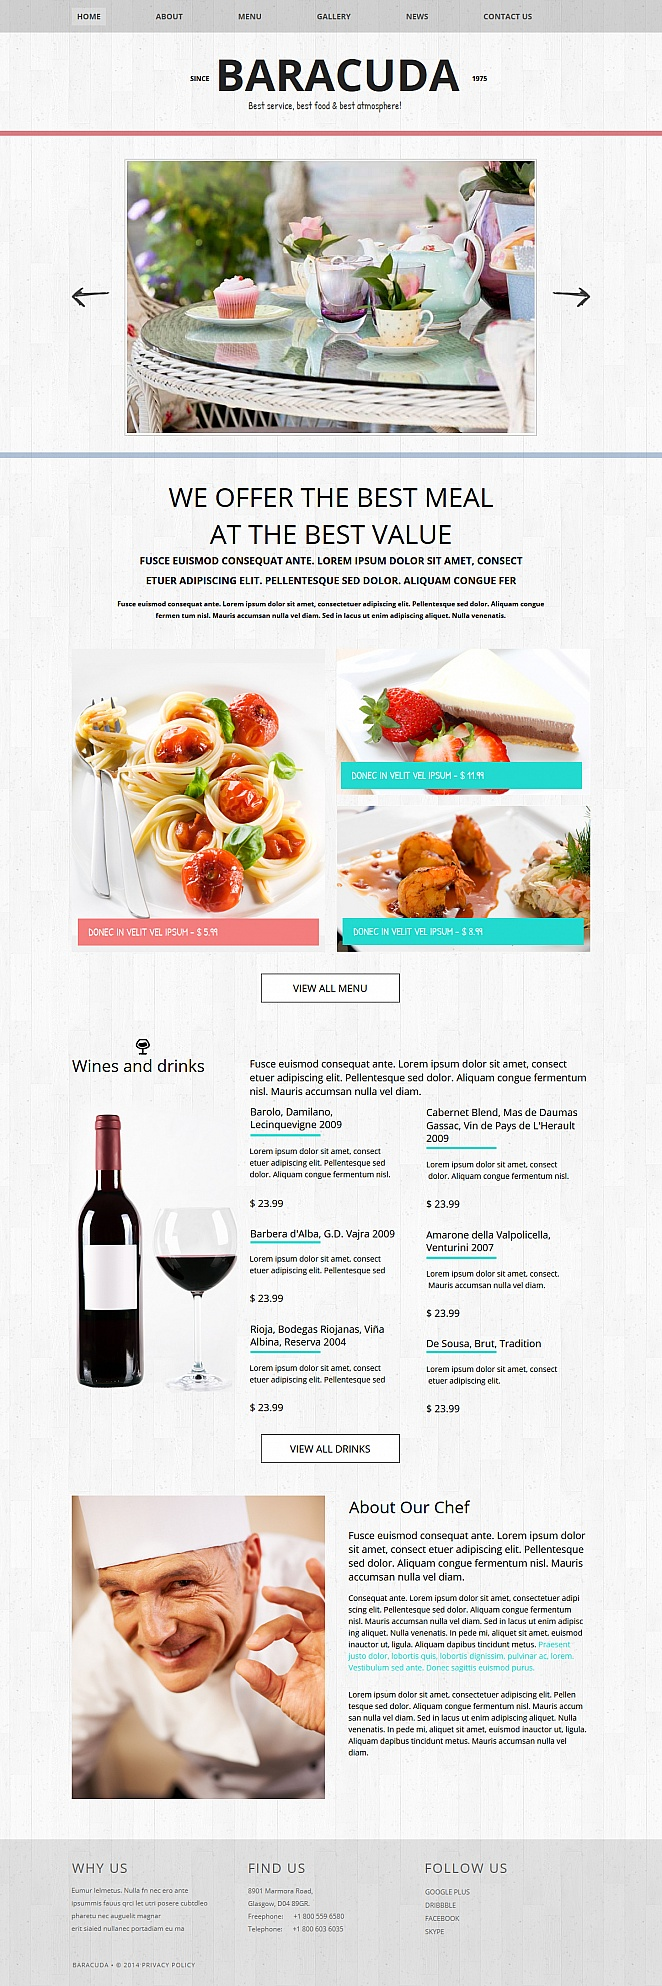 Restaurant Website Template with an Awesome Menu Design - image